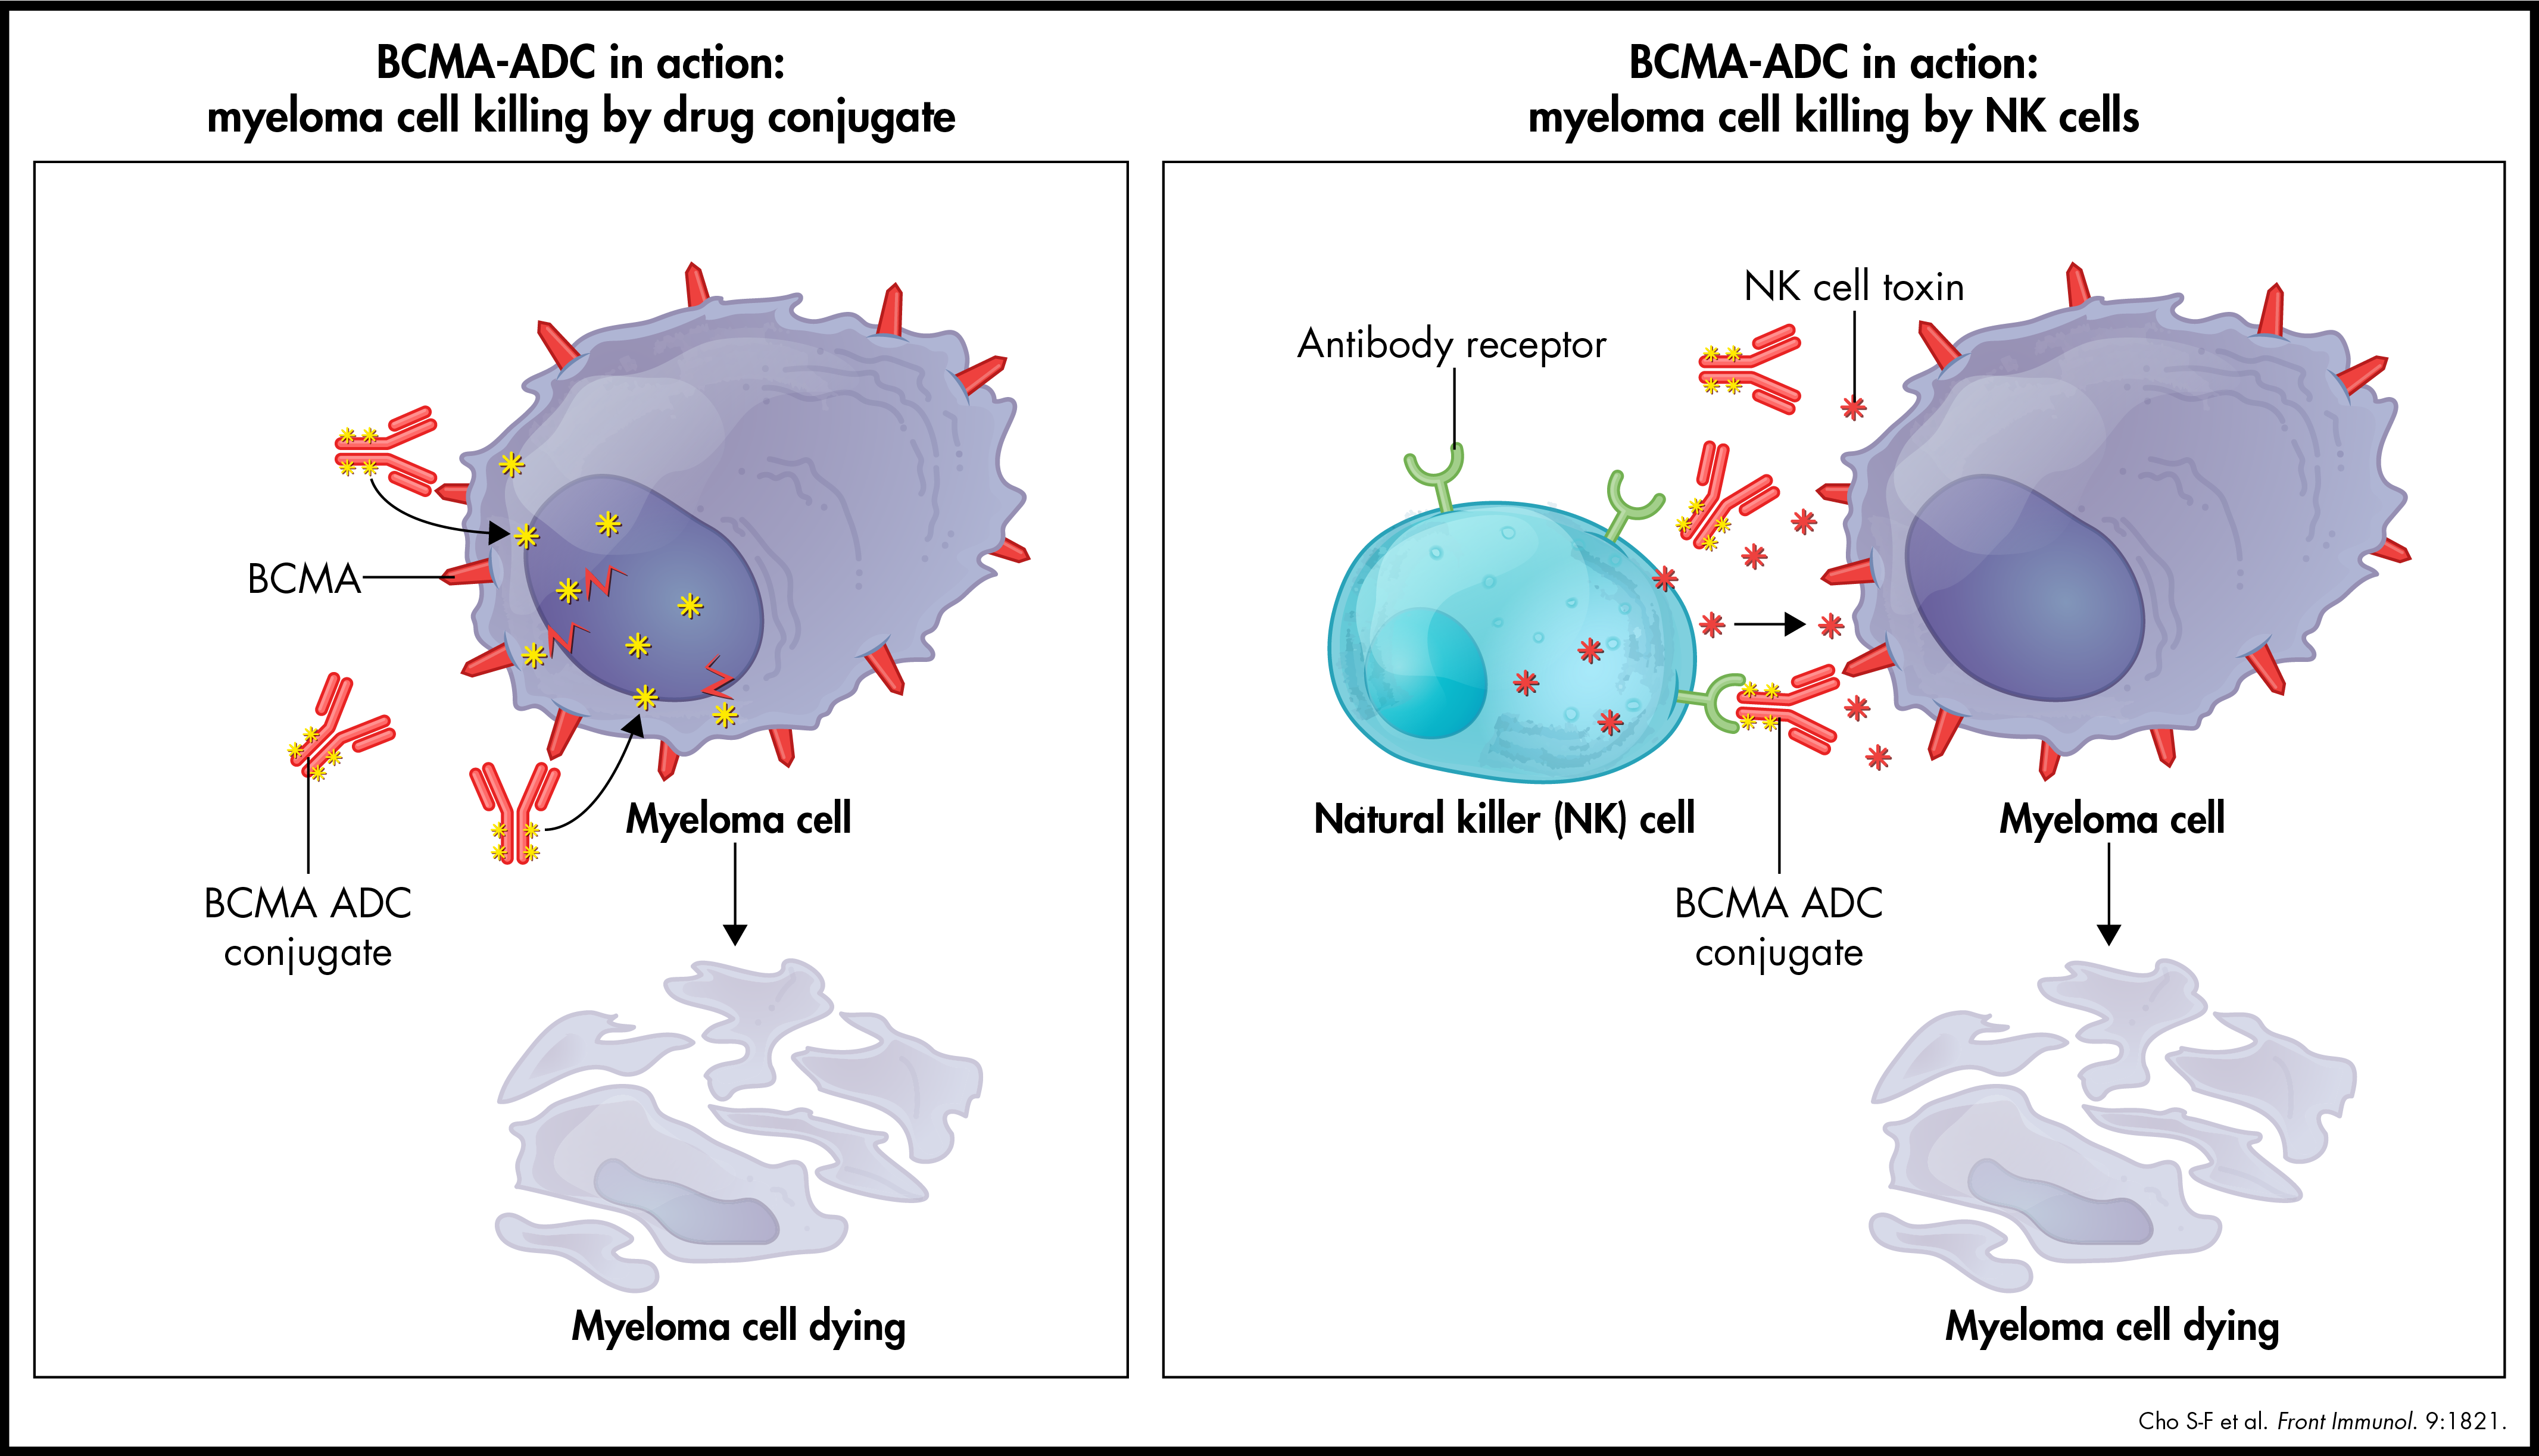 BCMA-ADC in action: myeloma cell kiling by drug conjugate and NK cells